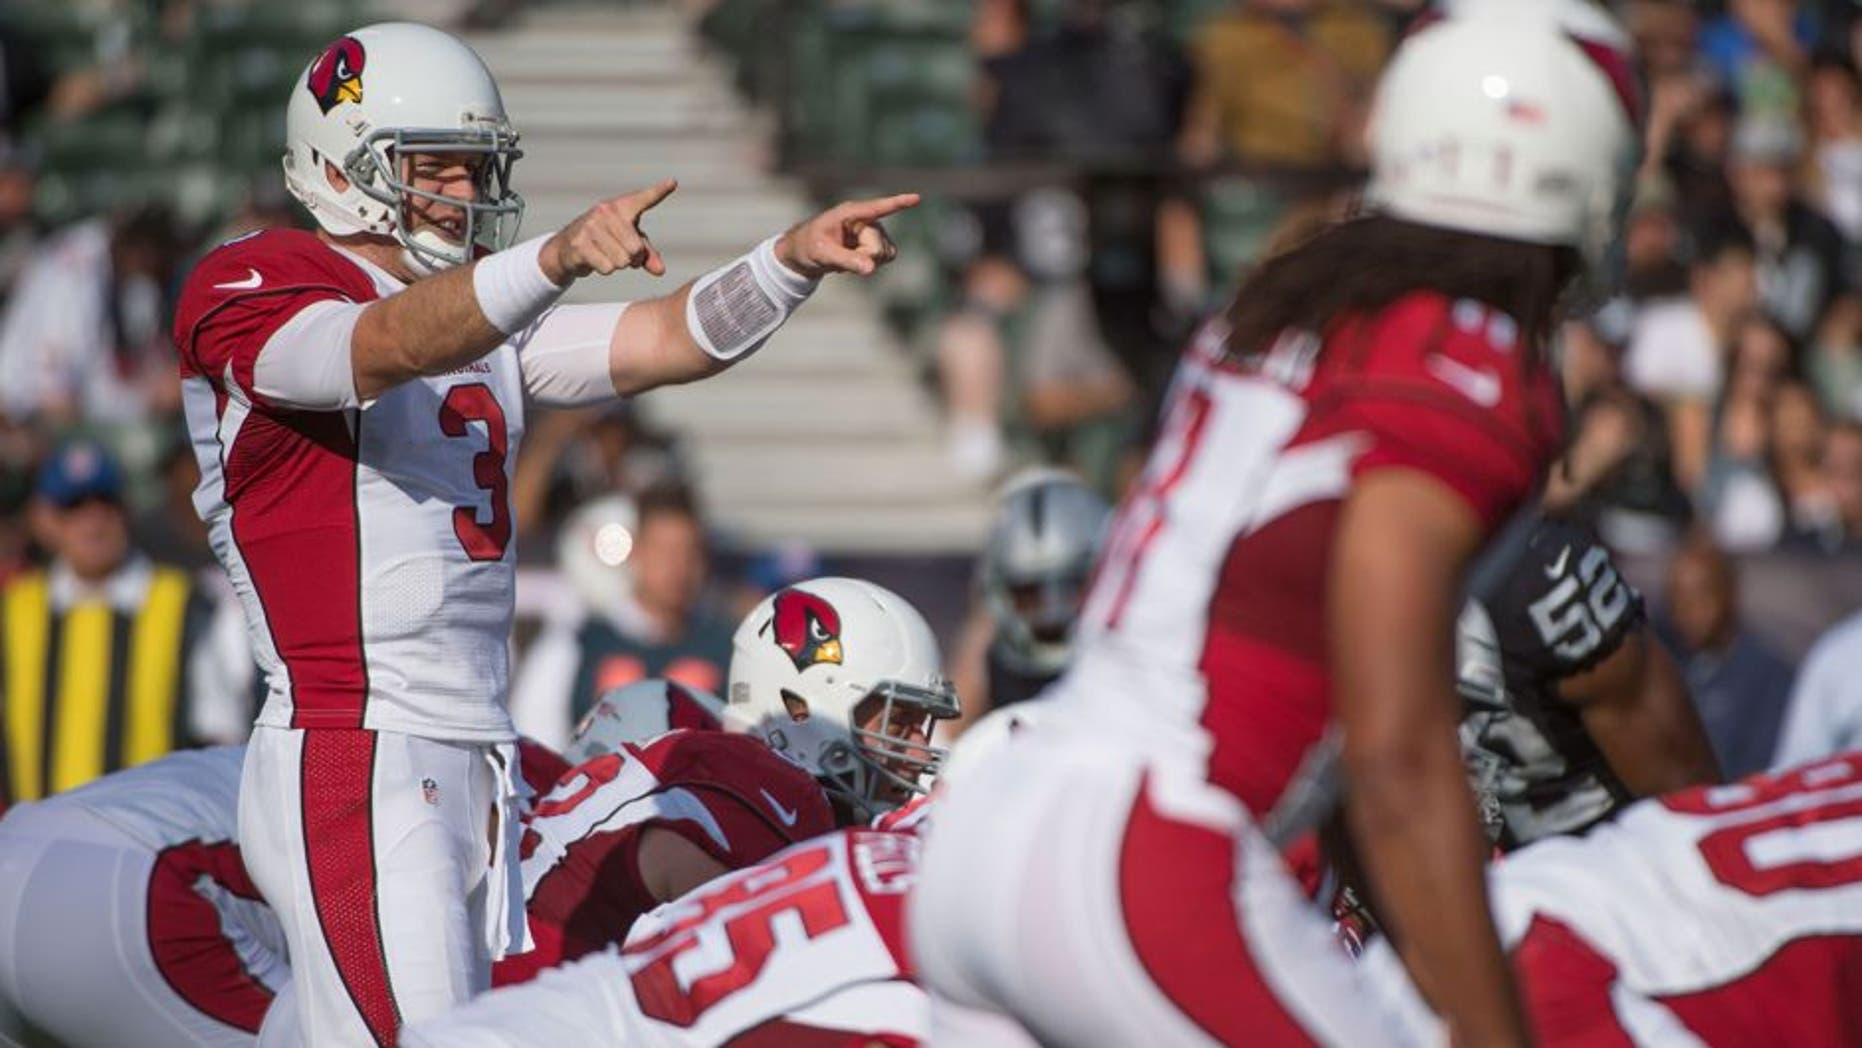 August 30, 2015; Oakland, CA, USA; Arizona Cardinals quarterback Carson Palmer (3) signals at the line of scrimmage against the Oakland Raiders during the first quarter in a preseason NFL football game at O.co Coliseum. Mandatory Credit: Kyle Terada-USA TODAY Sports